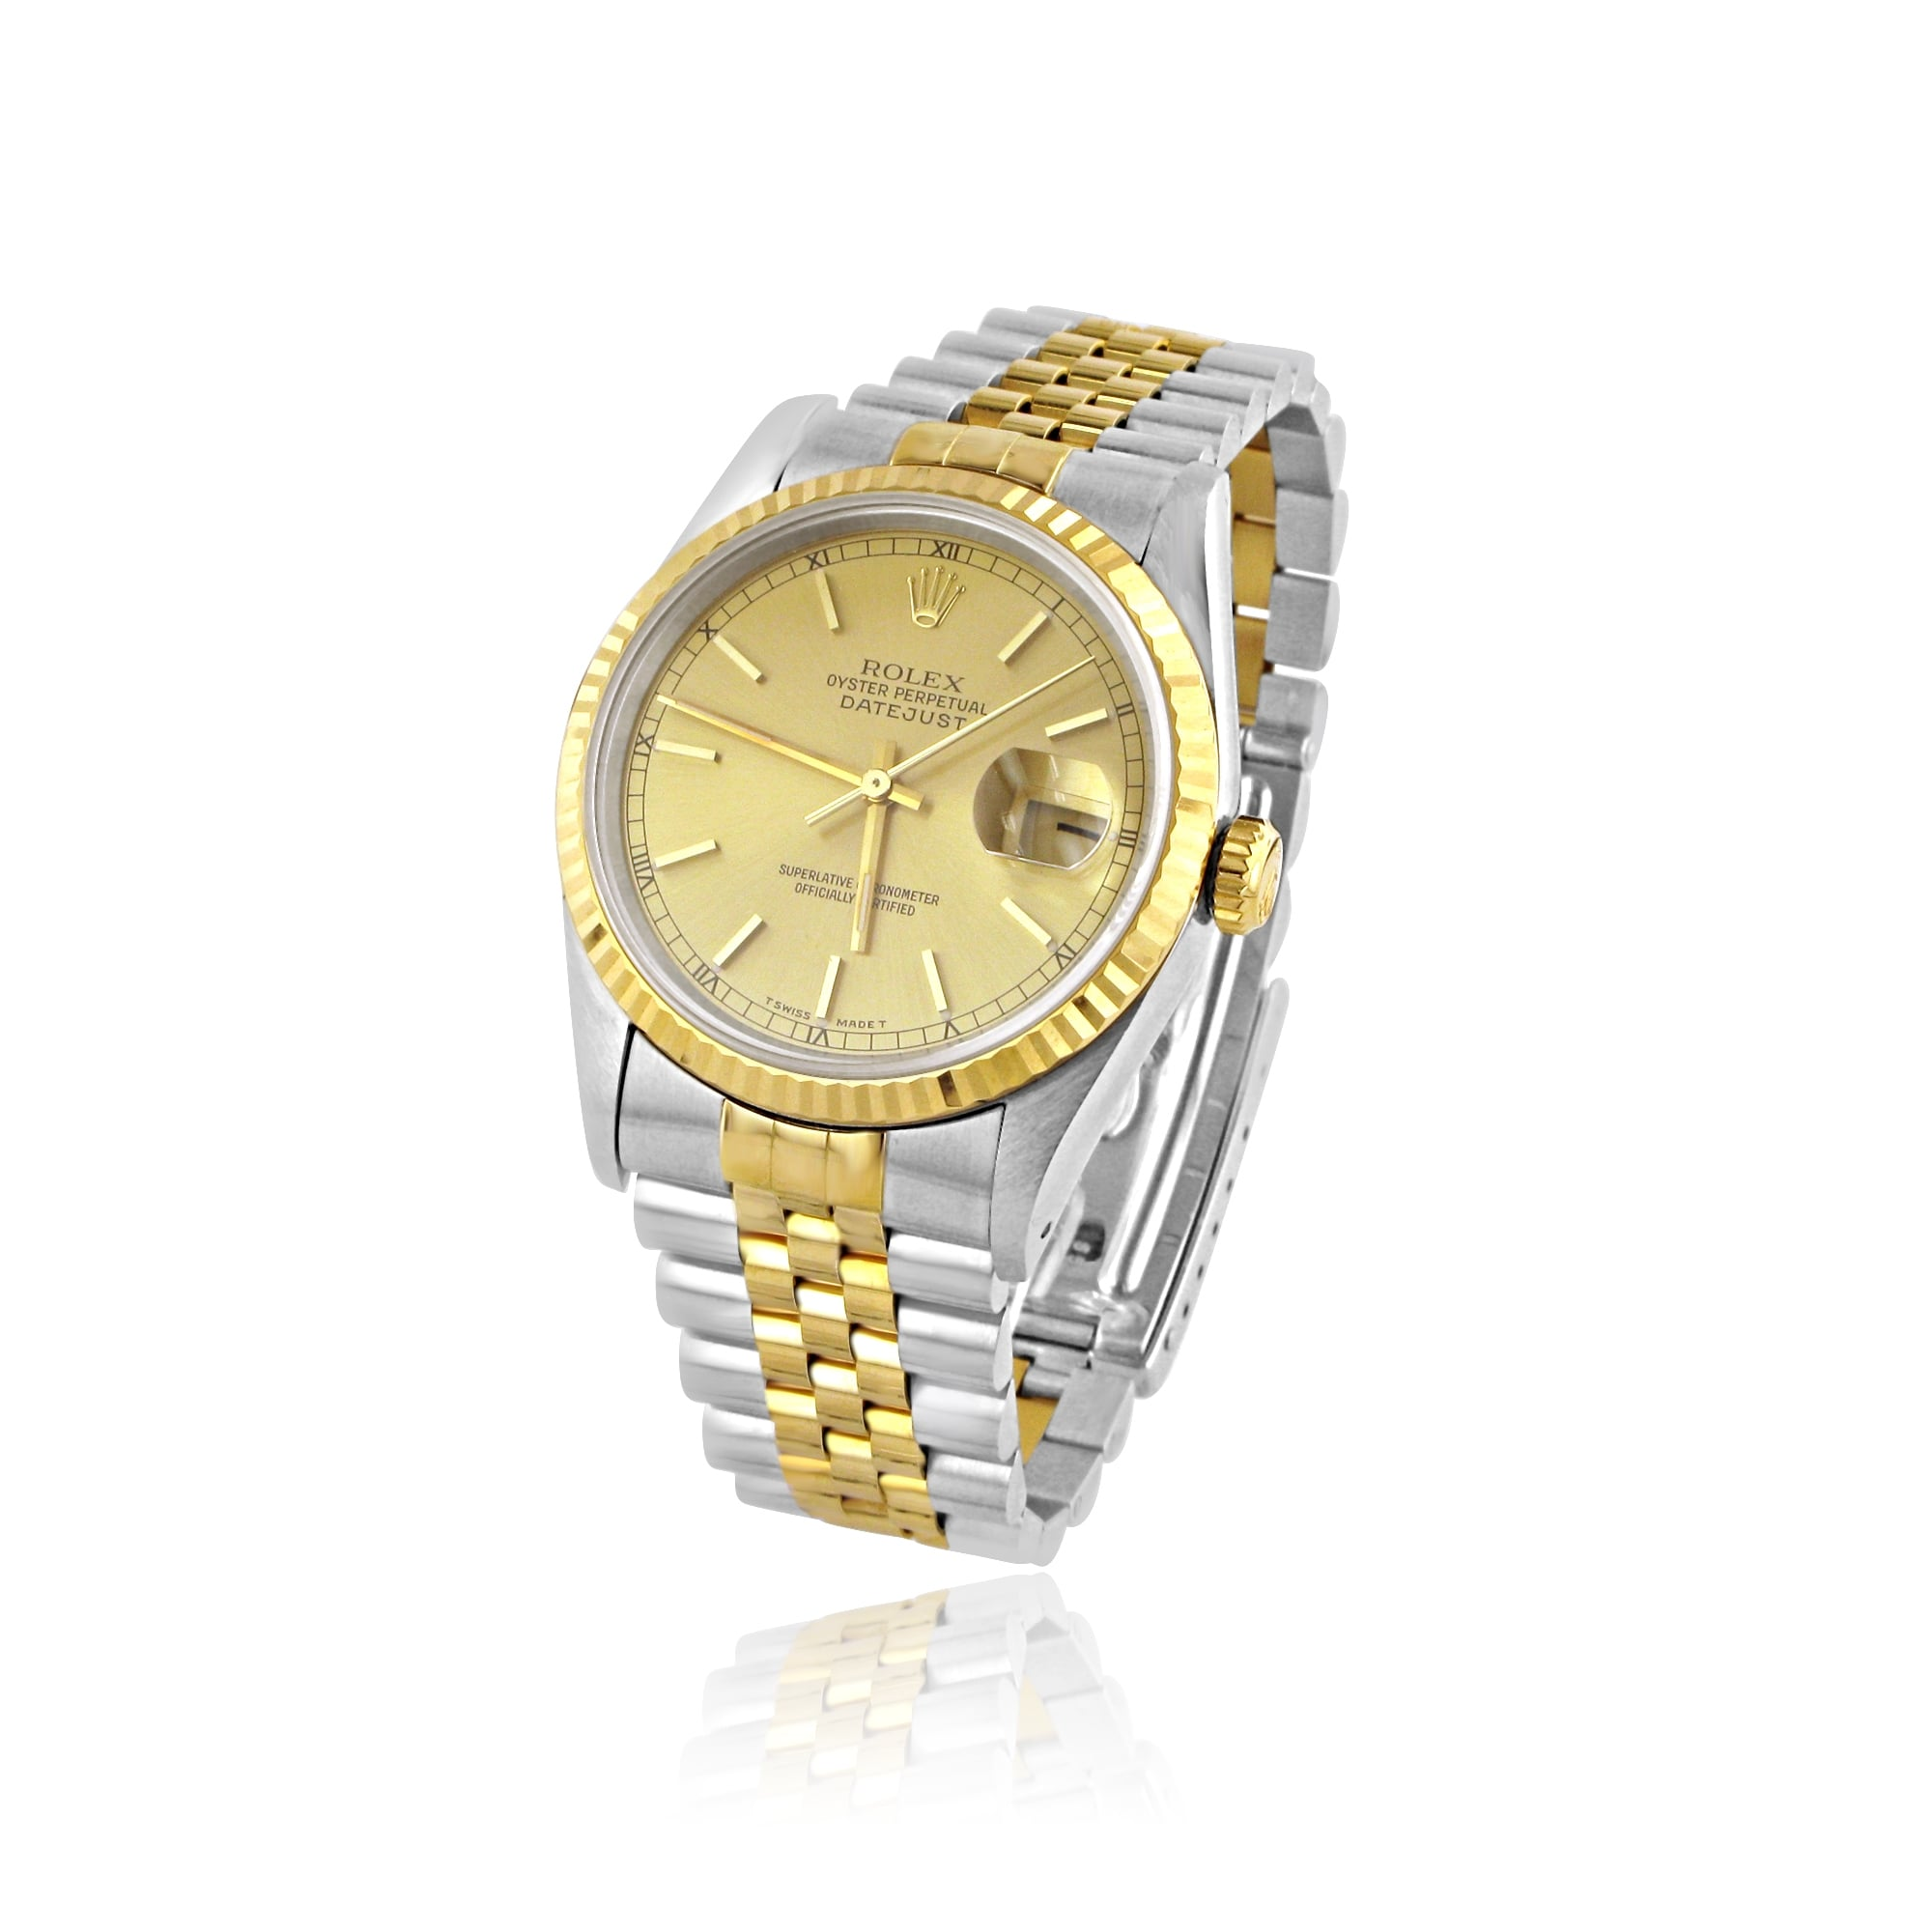 mens steel and 18ct gold rolex oyster perpetual datejust watch with gold dial. Black Bedroom Furniture Sets. Home Design Ideas